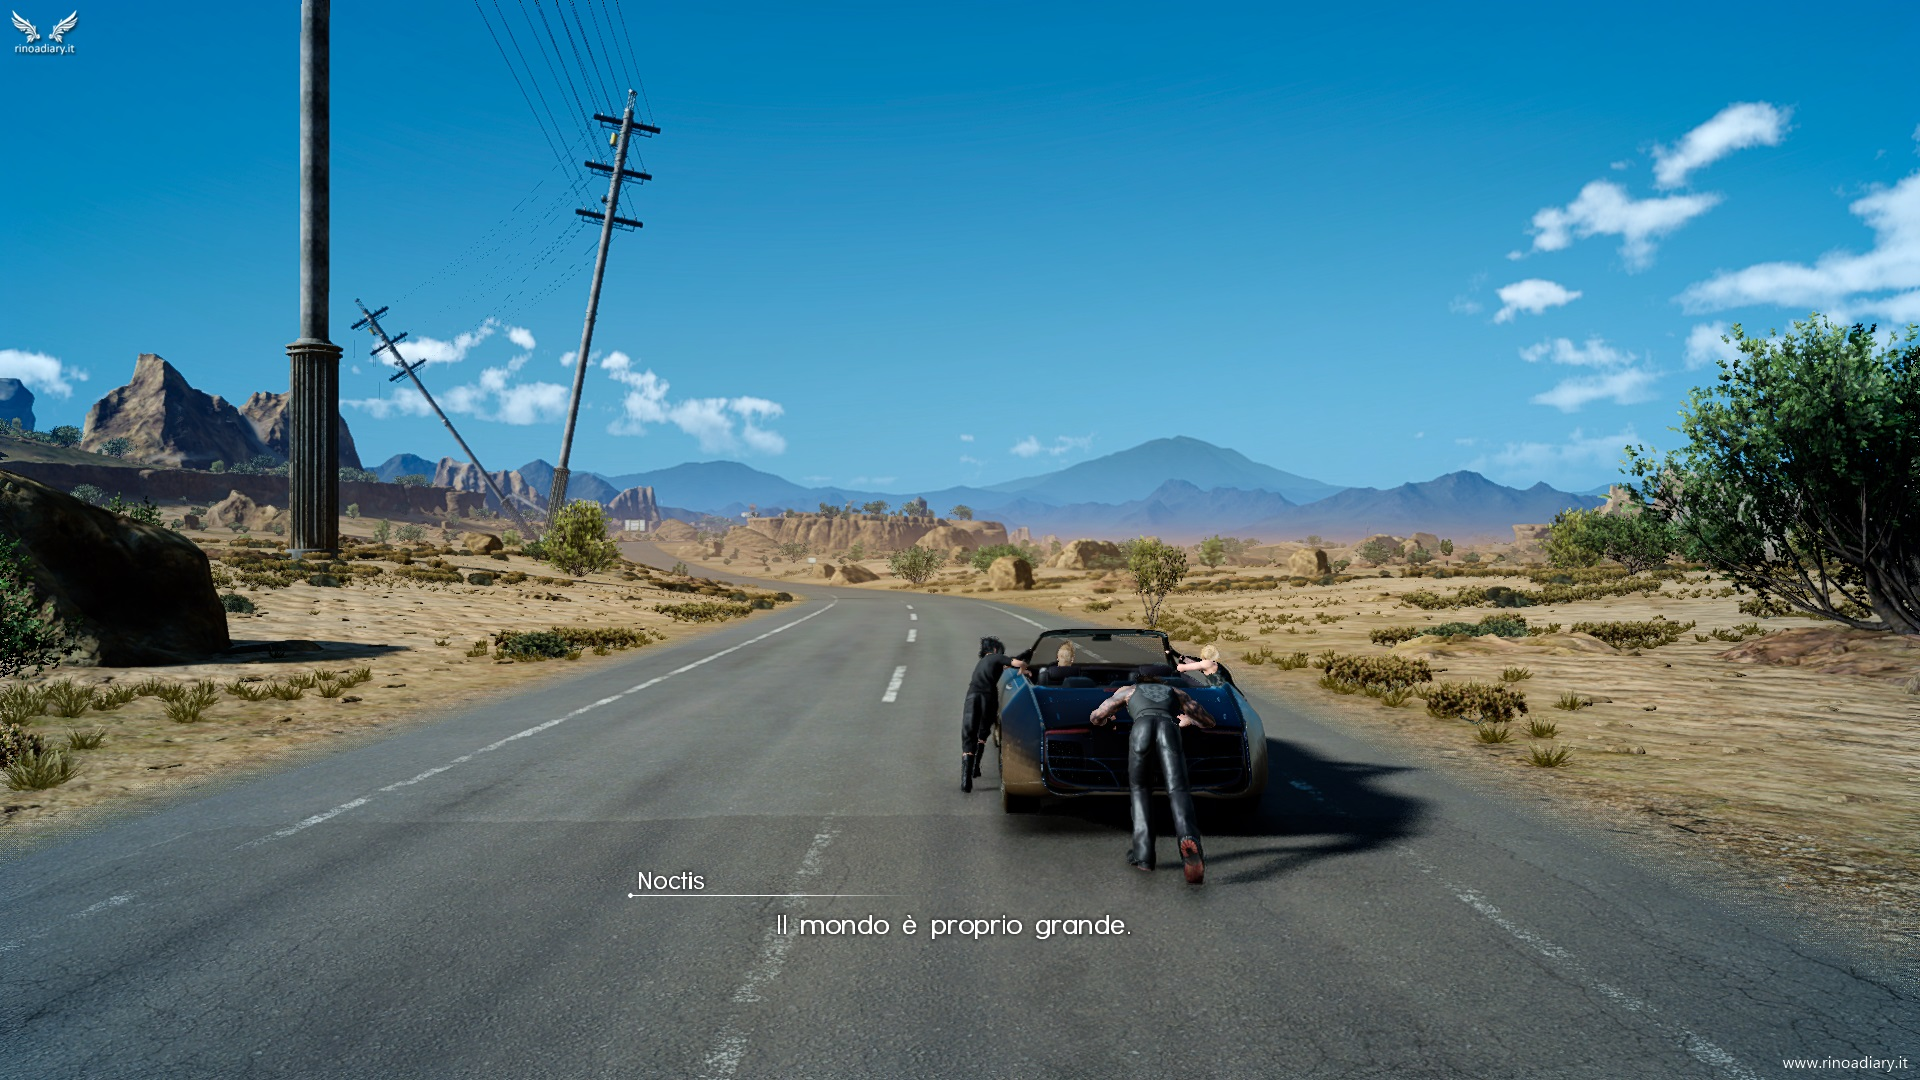 Video-ringraziamenti per il secondo anniversario di Final Fantasy XV